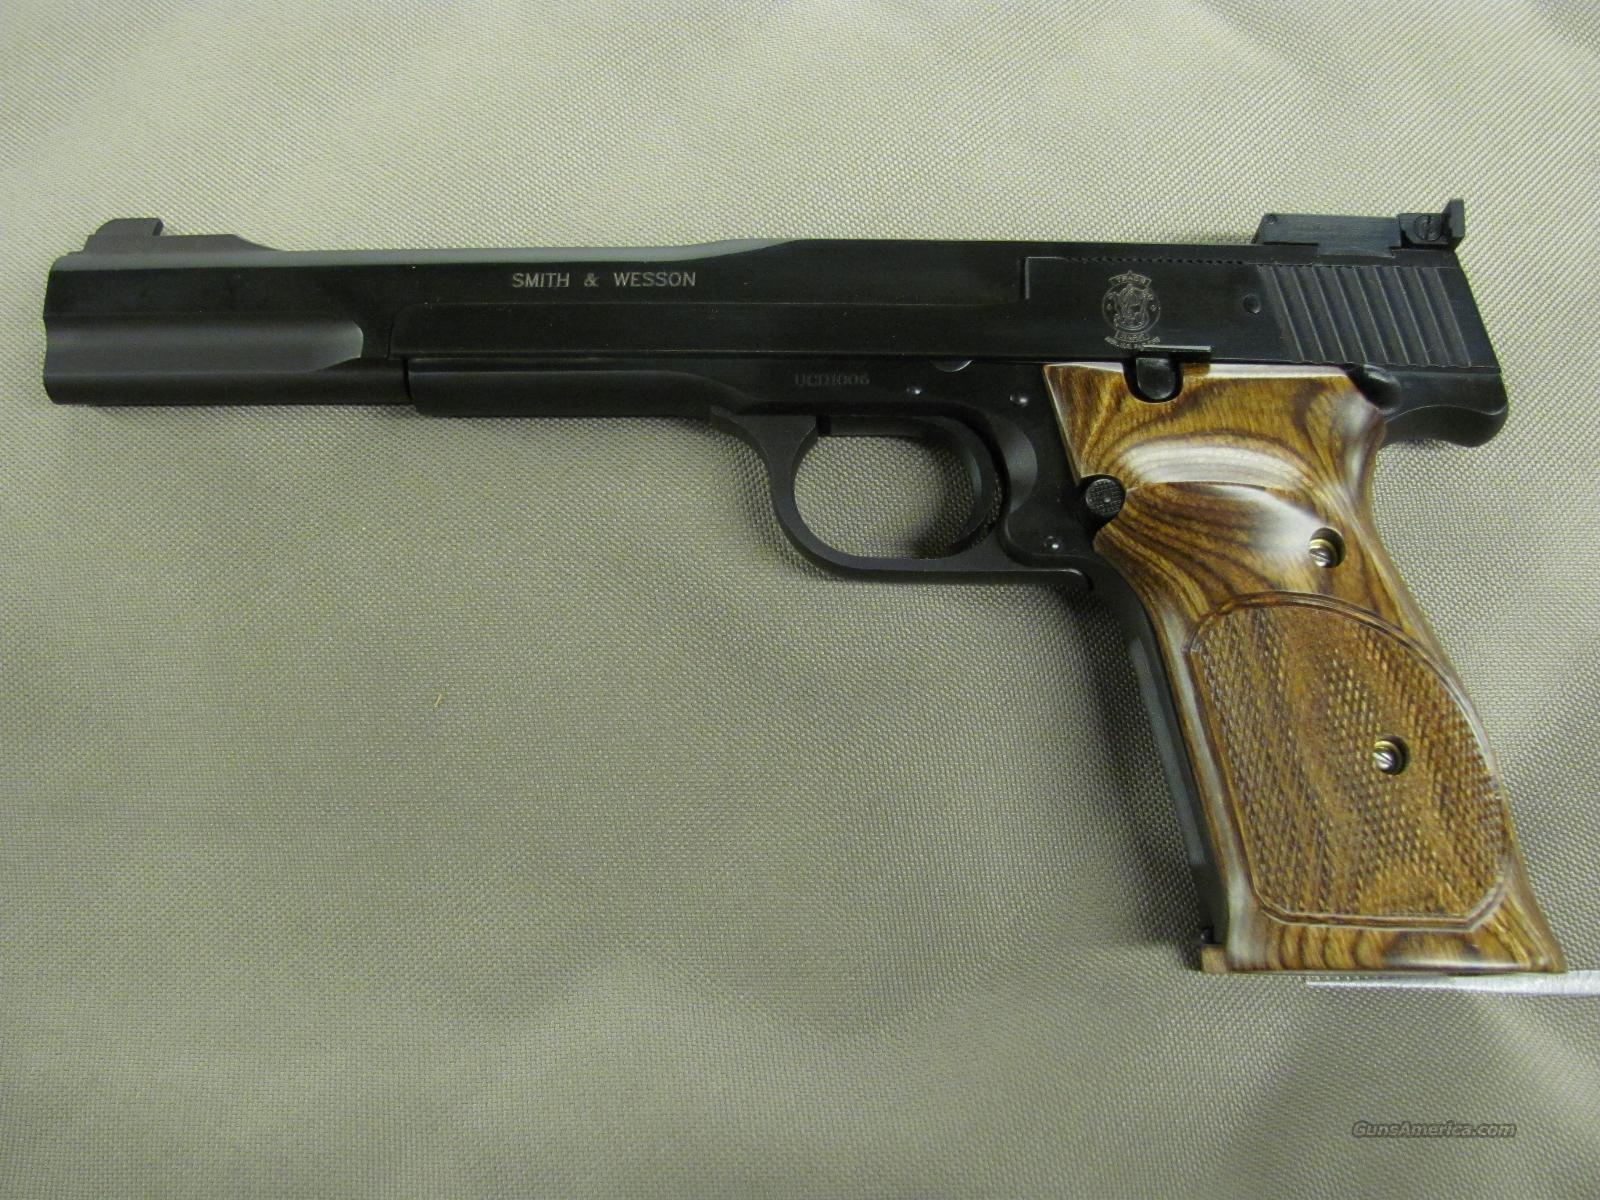 Smith & Wesson Model 41 7 inch  **NEW**  Guns > Pistols > Smith & Wesson Pistols - Autos > .22 Autos